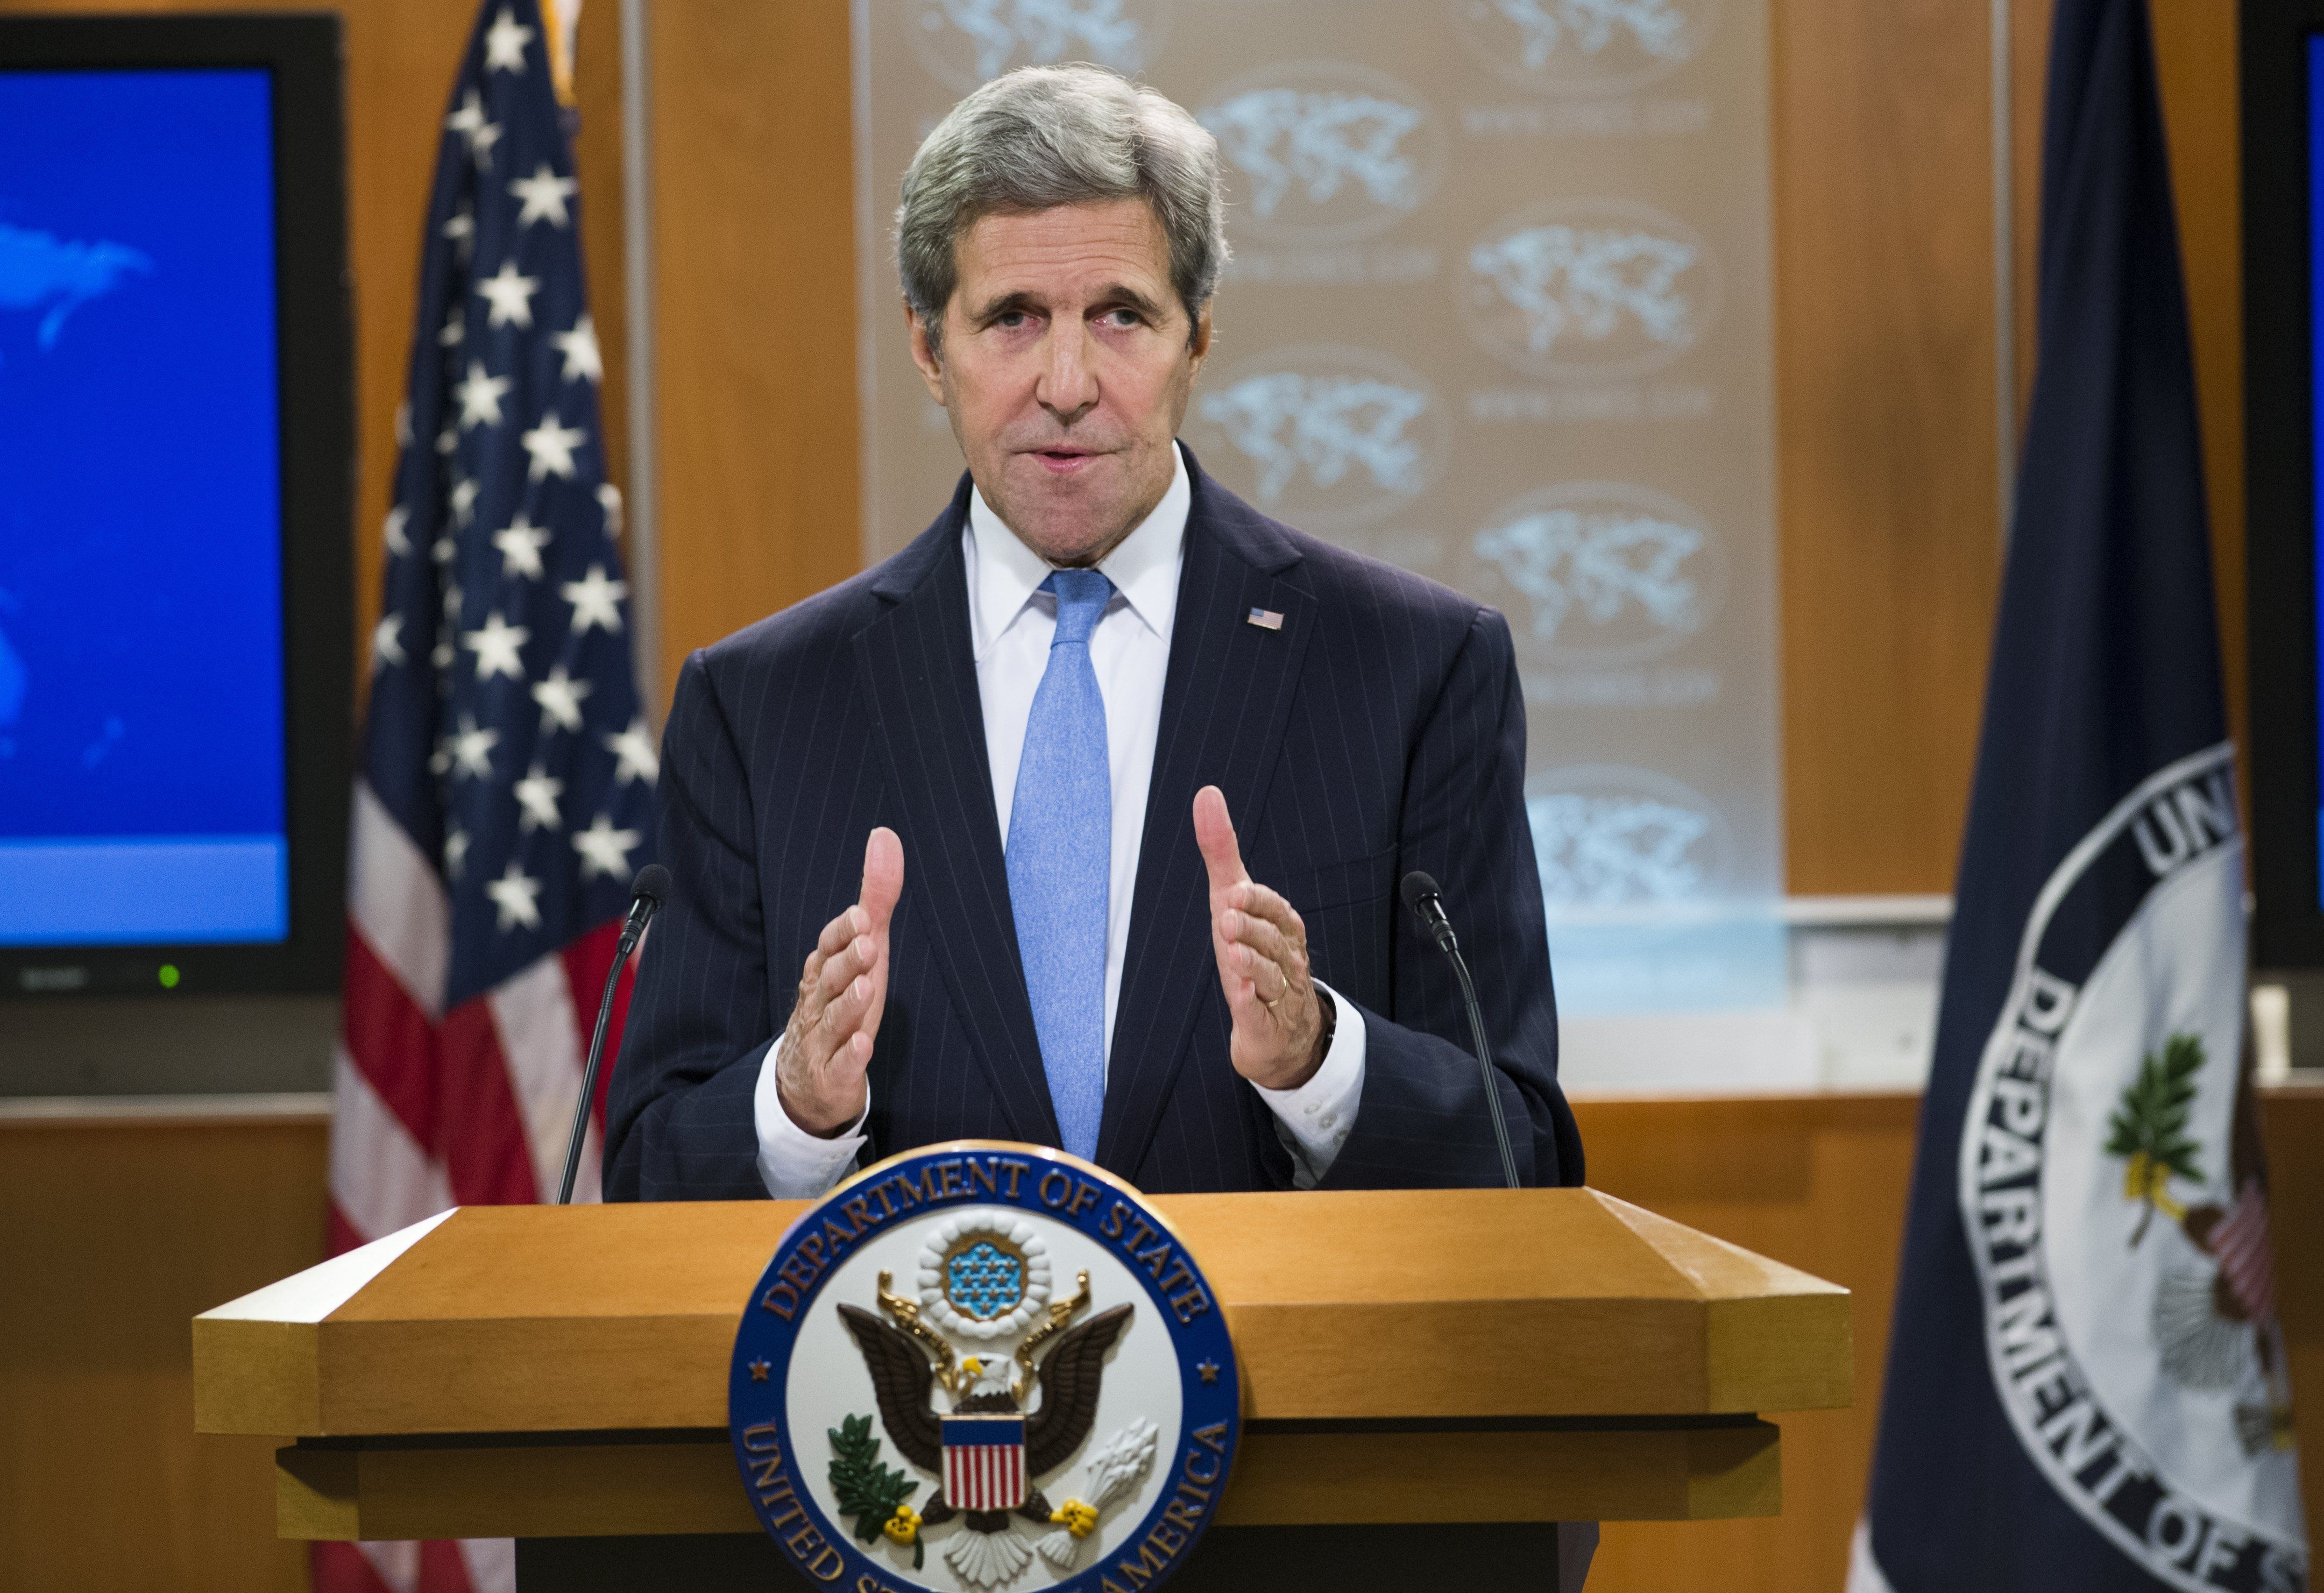 US Secretary of State John Kerry speaks during a press briefing at the State Department in Washington, DC, January 7, 2016. AFP PHOTO / SAUL LOEB / AFP / SAUL LOEB        (Photo credit should read SAUL LOEB/AFP/Getty Images)